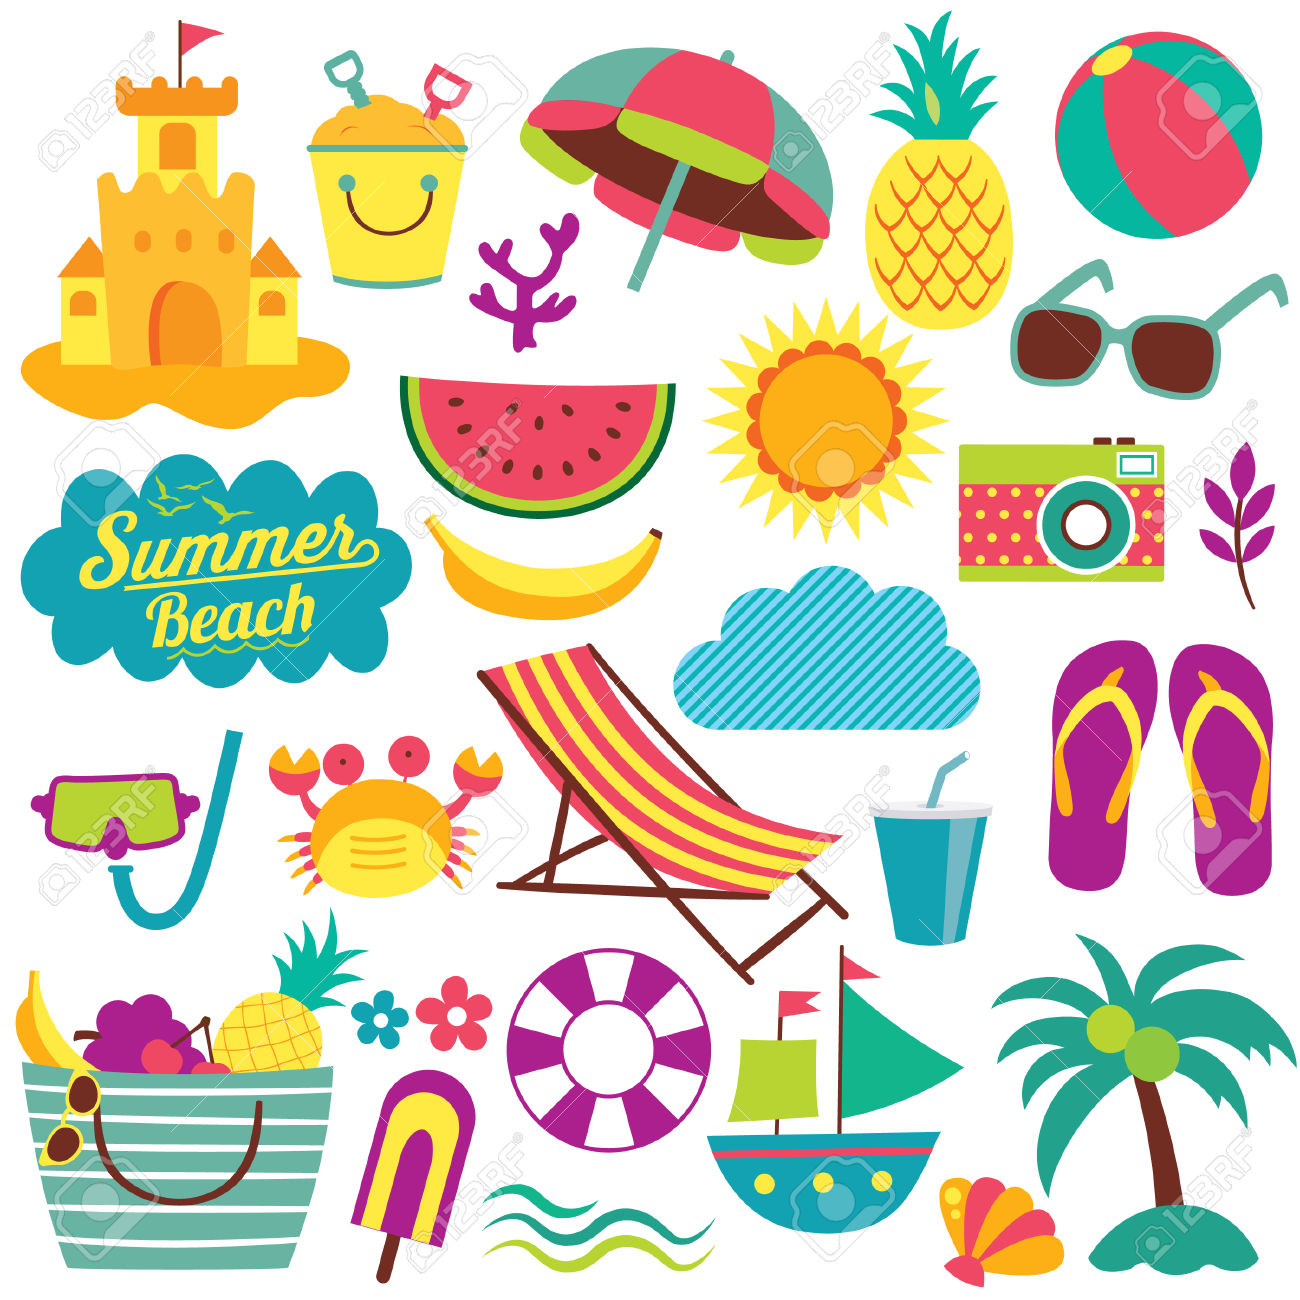 Free Summer Theme Cliparts, Download Free Clip Art, Free Clip Art on.